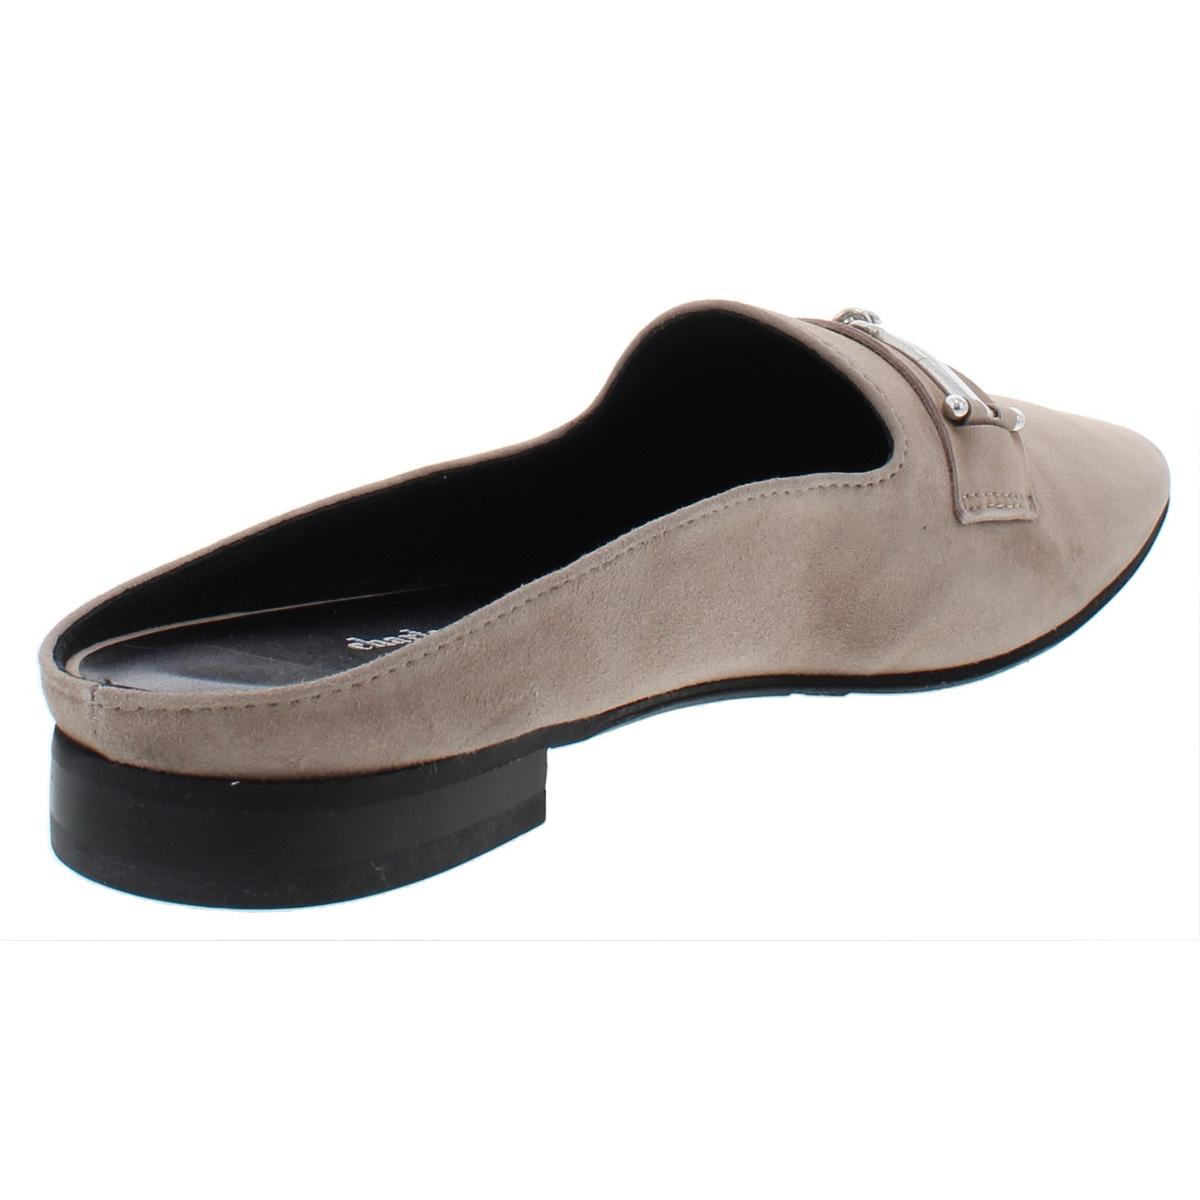 Charles-David-Womens-MELODY-Suede-Slip-On-Dress-Loafer-Mule-Shoes-BHFO-9251 thumbnail 6